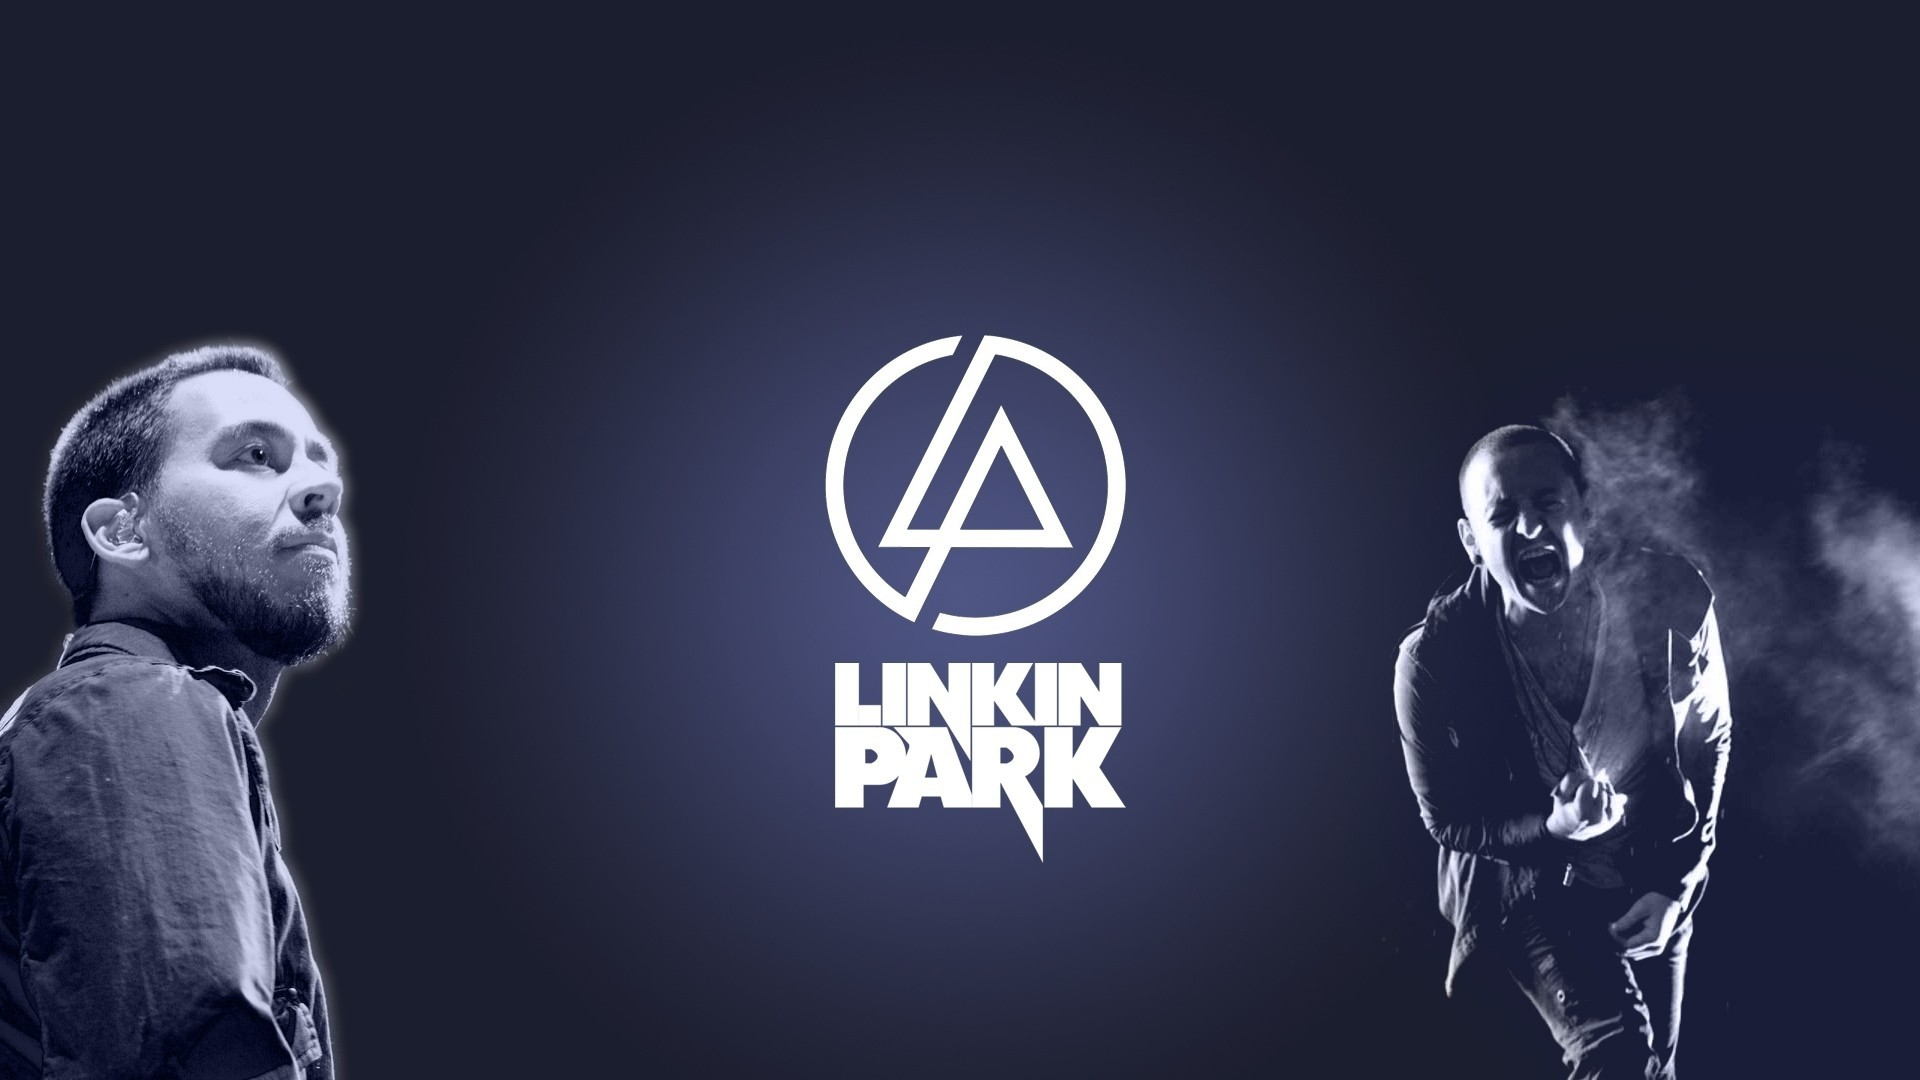 Res: 1920x1080, Linkin Park Wallpaper